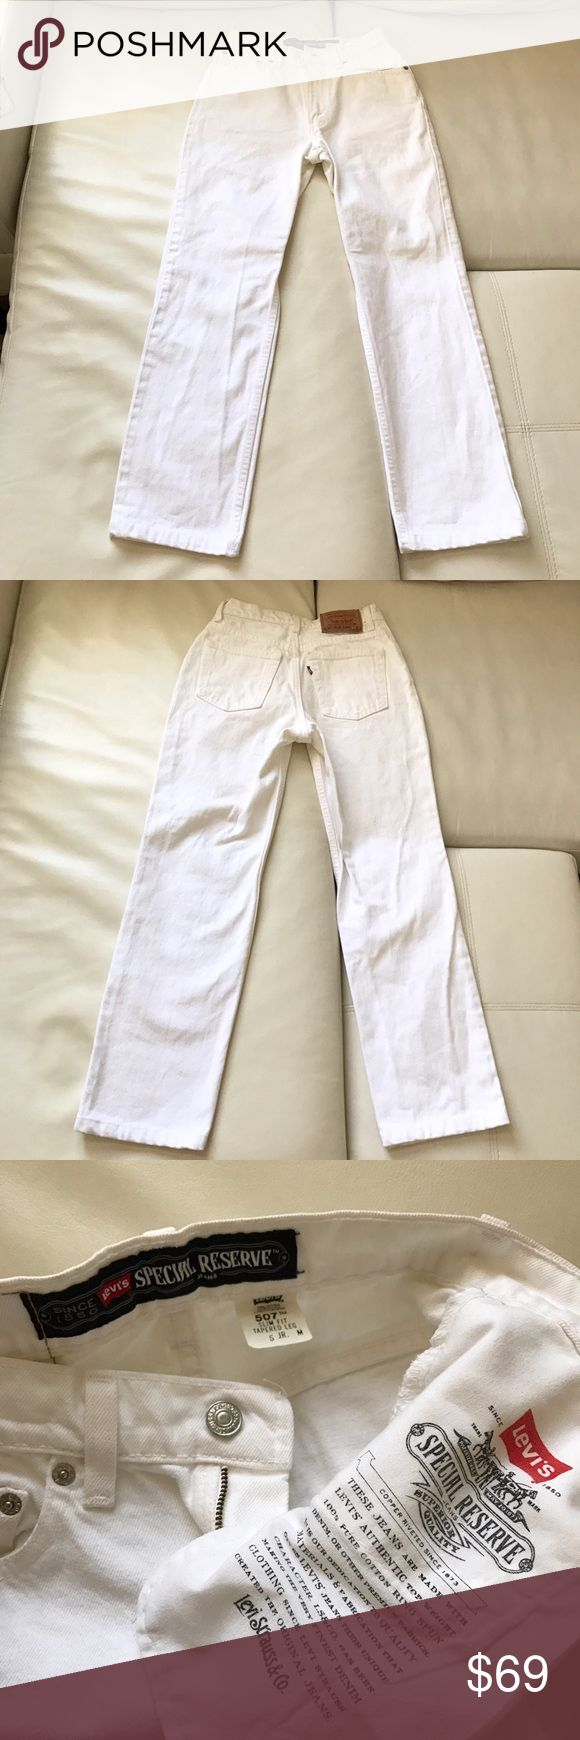 "LEVI's 507 Special Reserve white jeans (juniors 5) Classic high rise white jeans for young girls. Perfect for spring or summer.  Waist 24"" Rise 10"" Inseam 27"" Levi's Jeans Straight Leg"